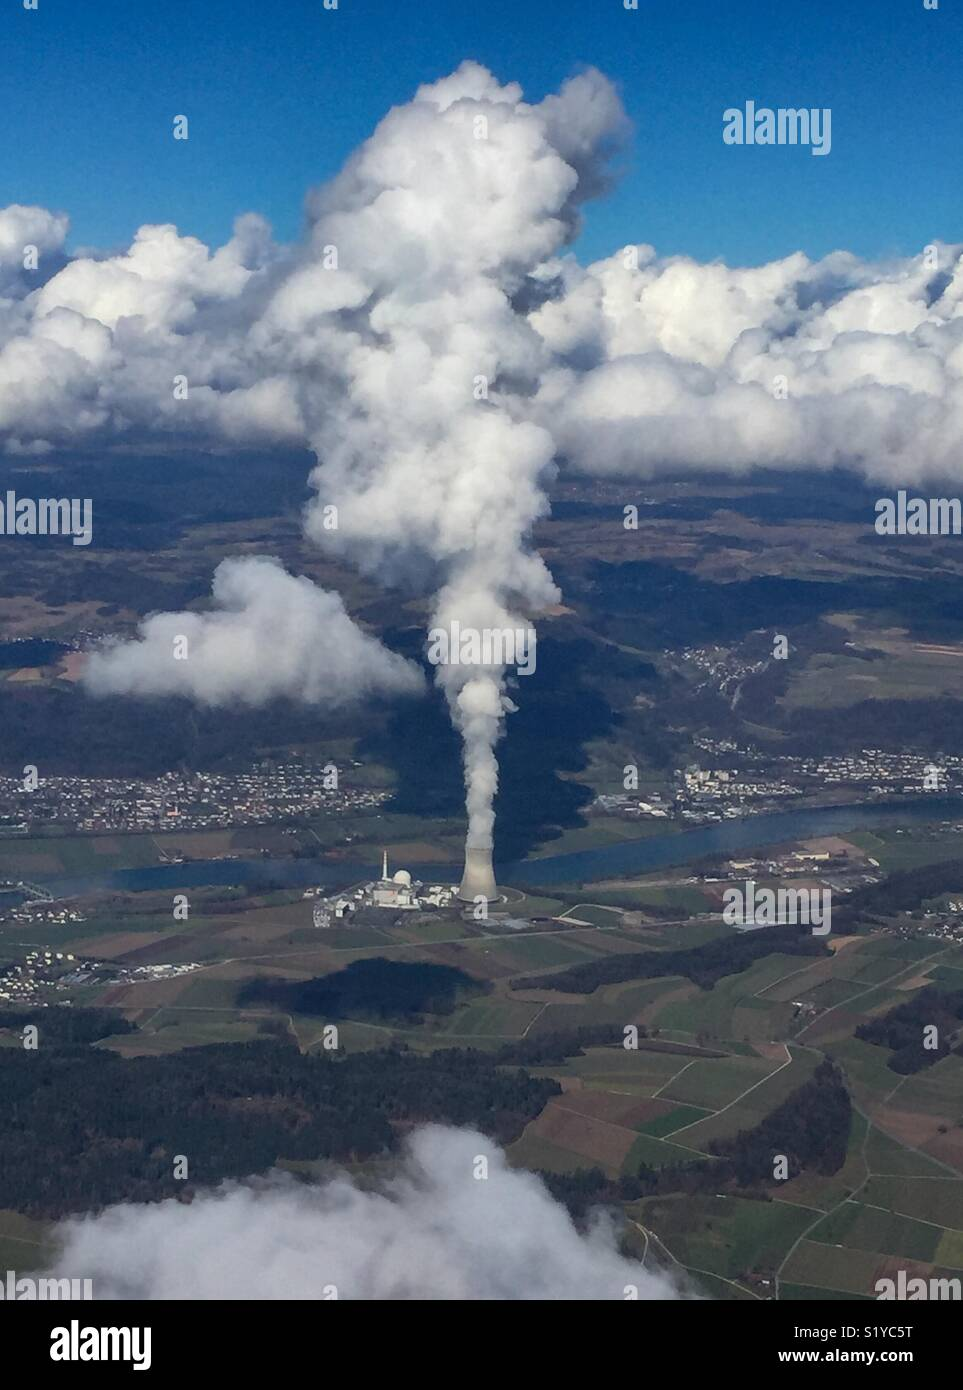 Aerial view of an atomic power plant and of the steam it produces. - Stock Image